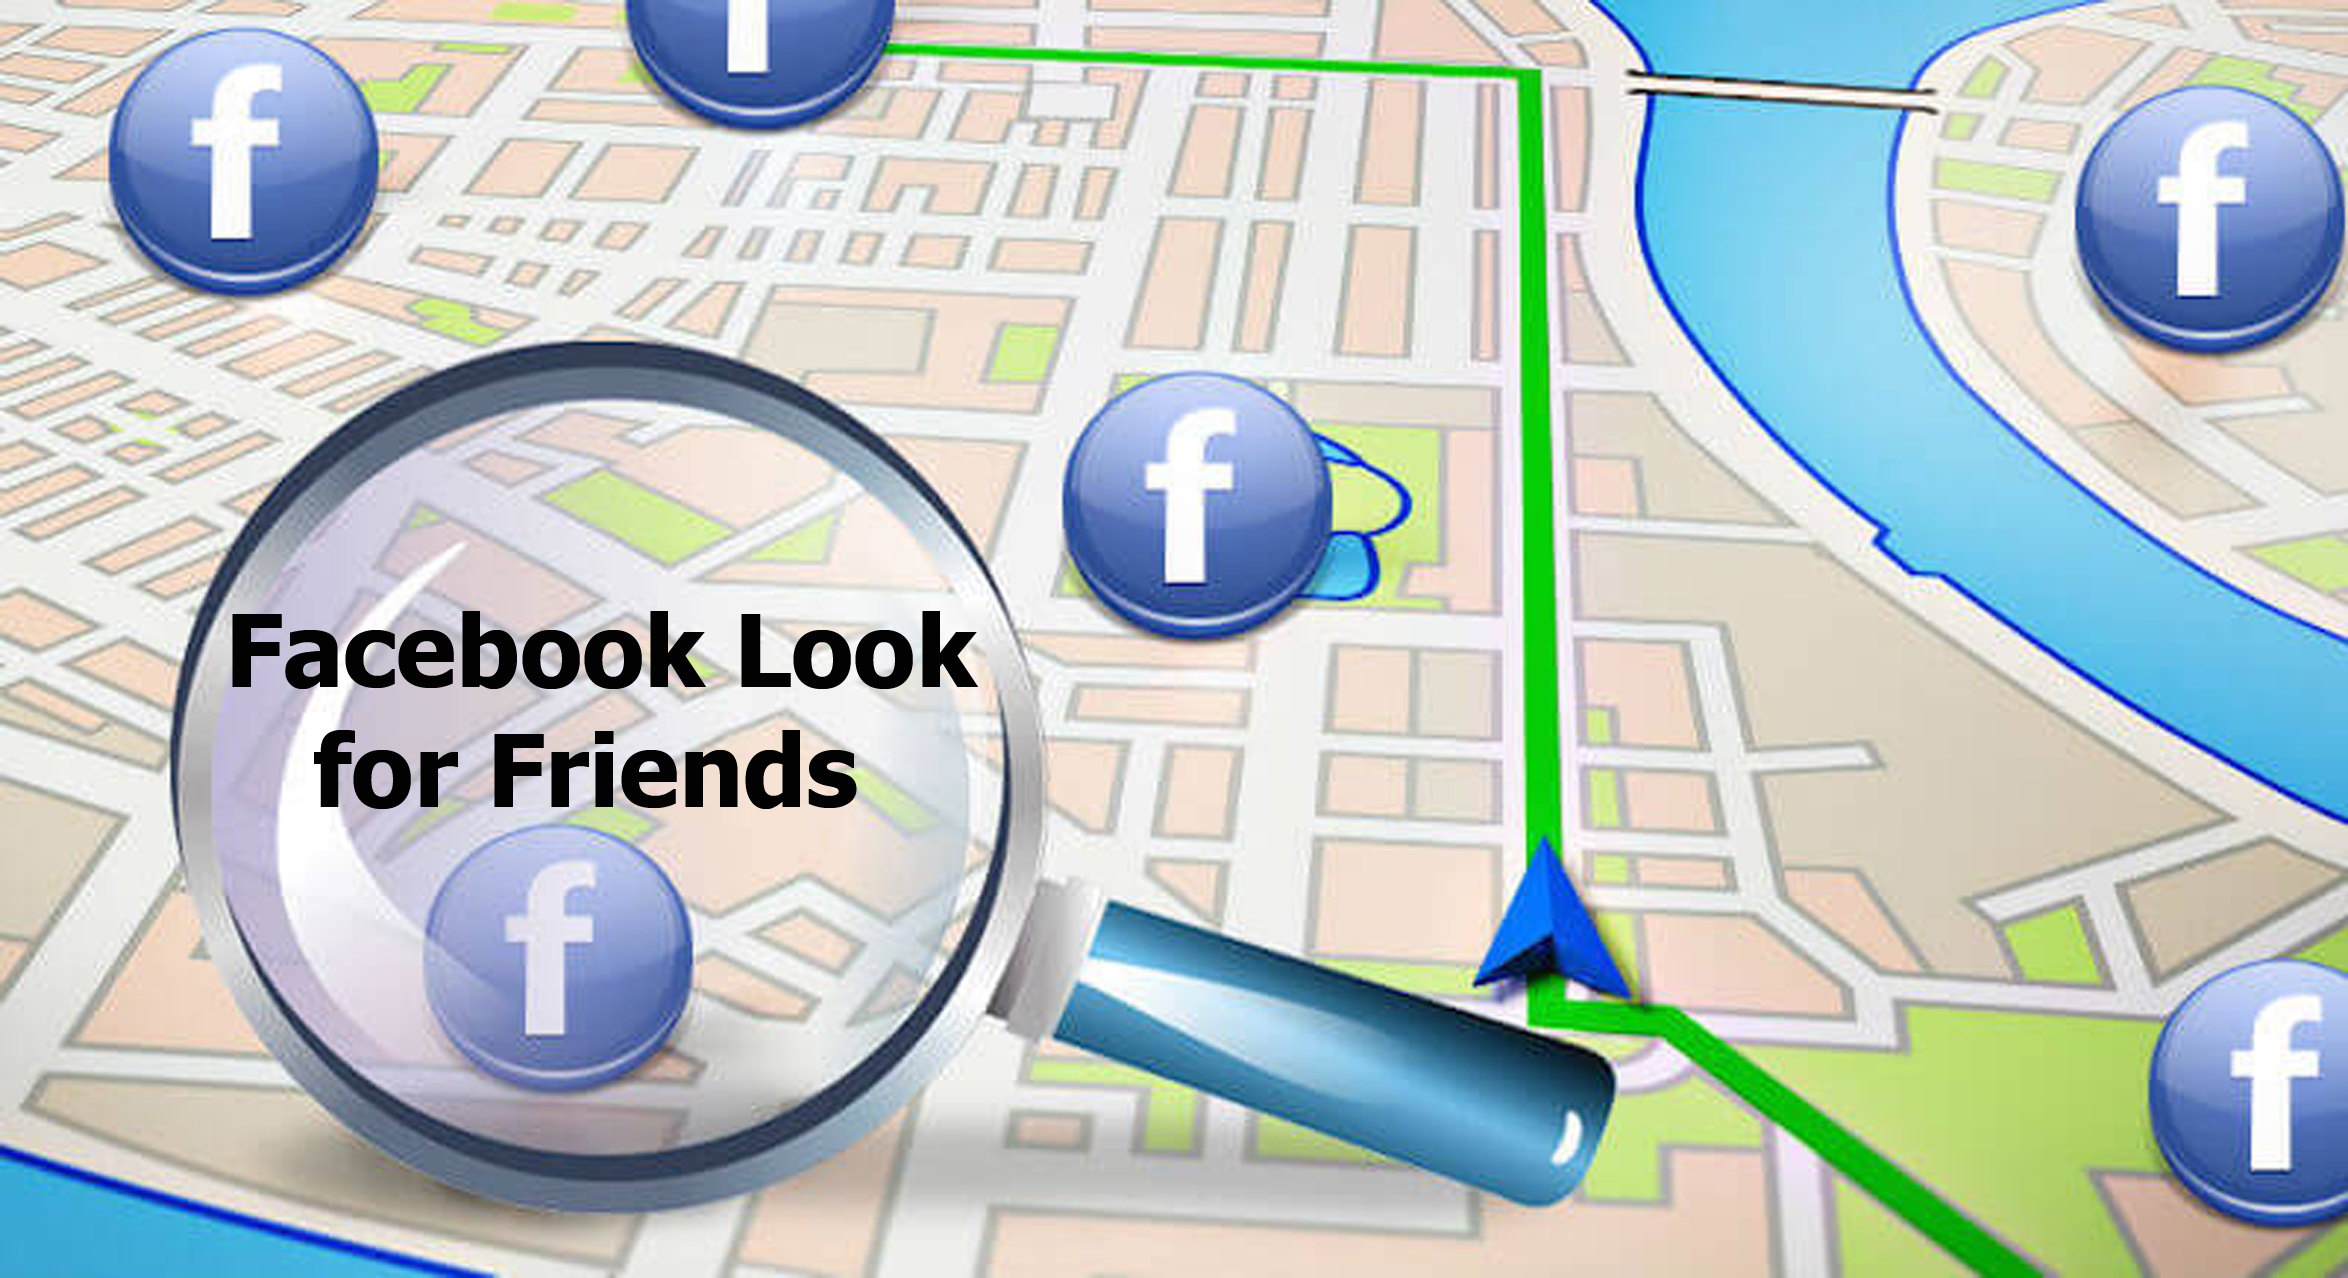 Facebook Look for Friends – Facebook Find Friends Nearby